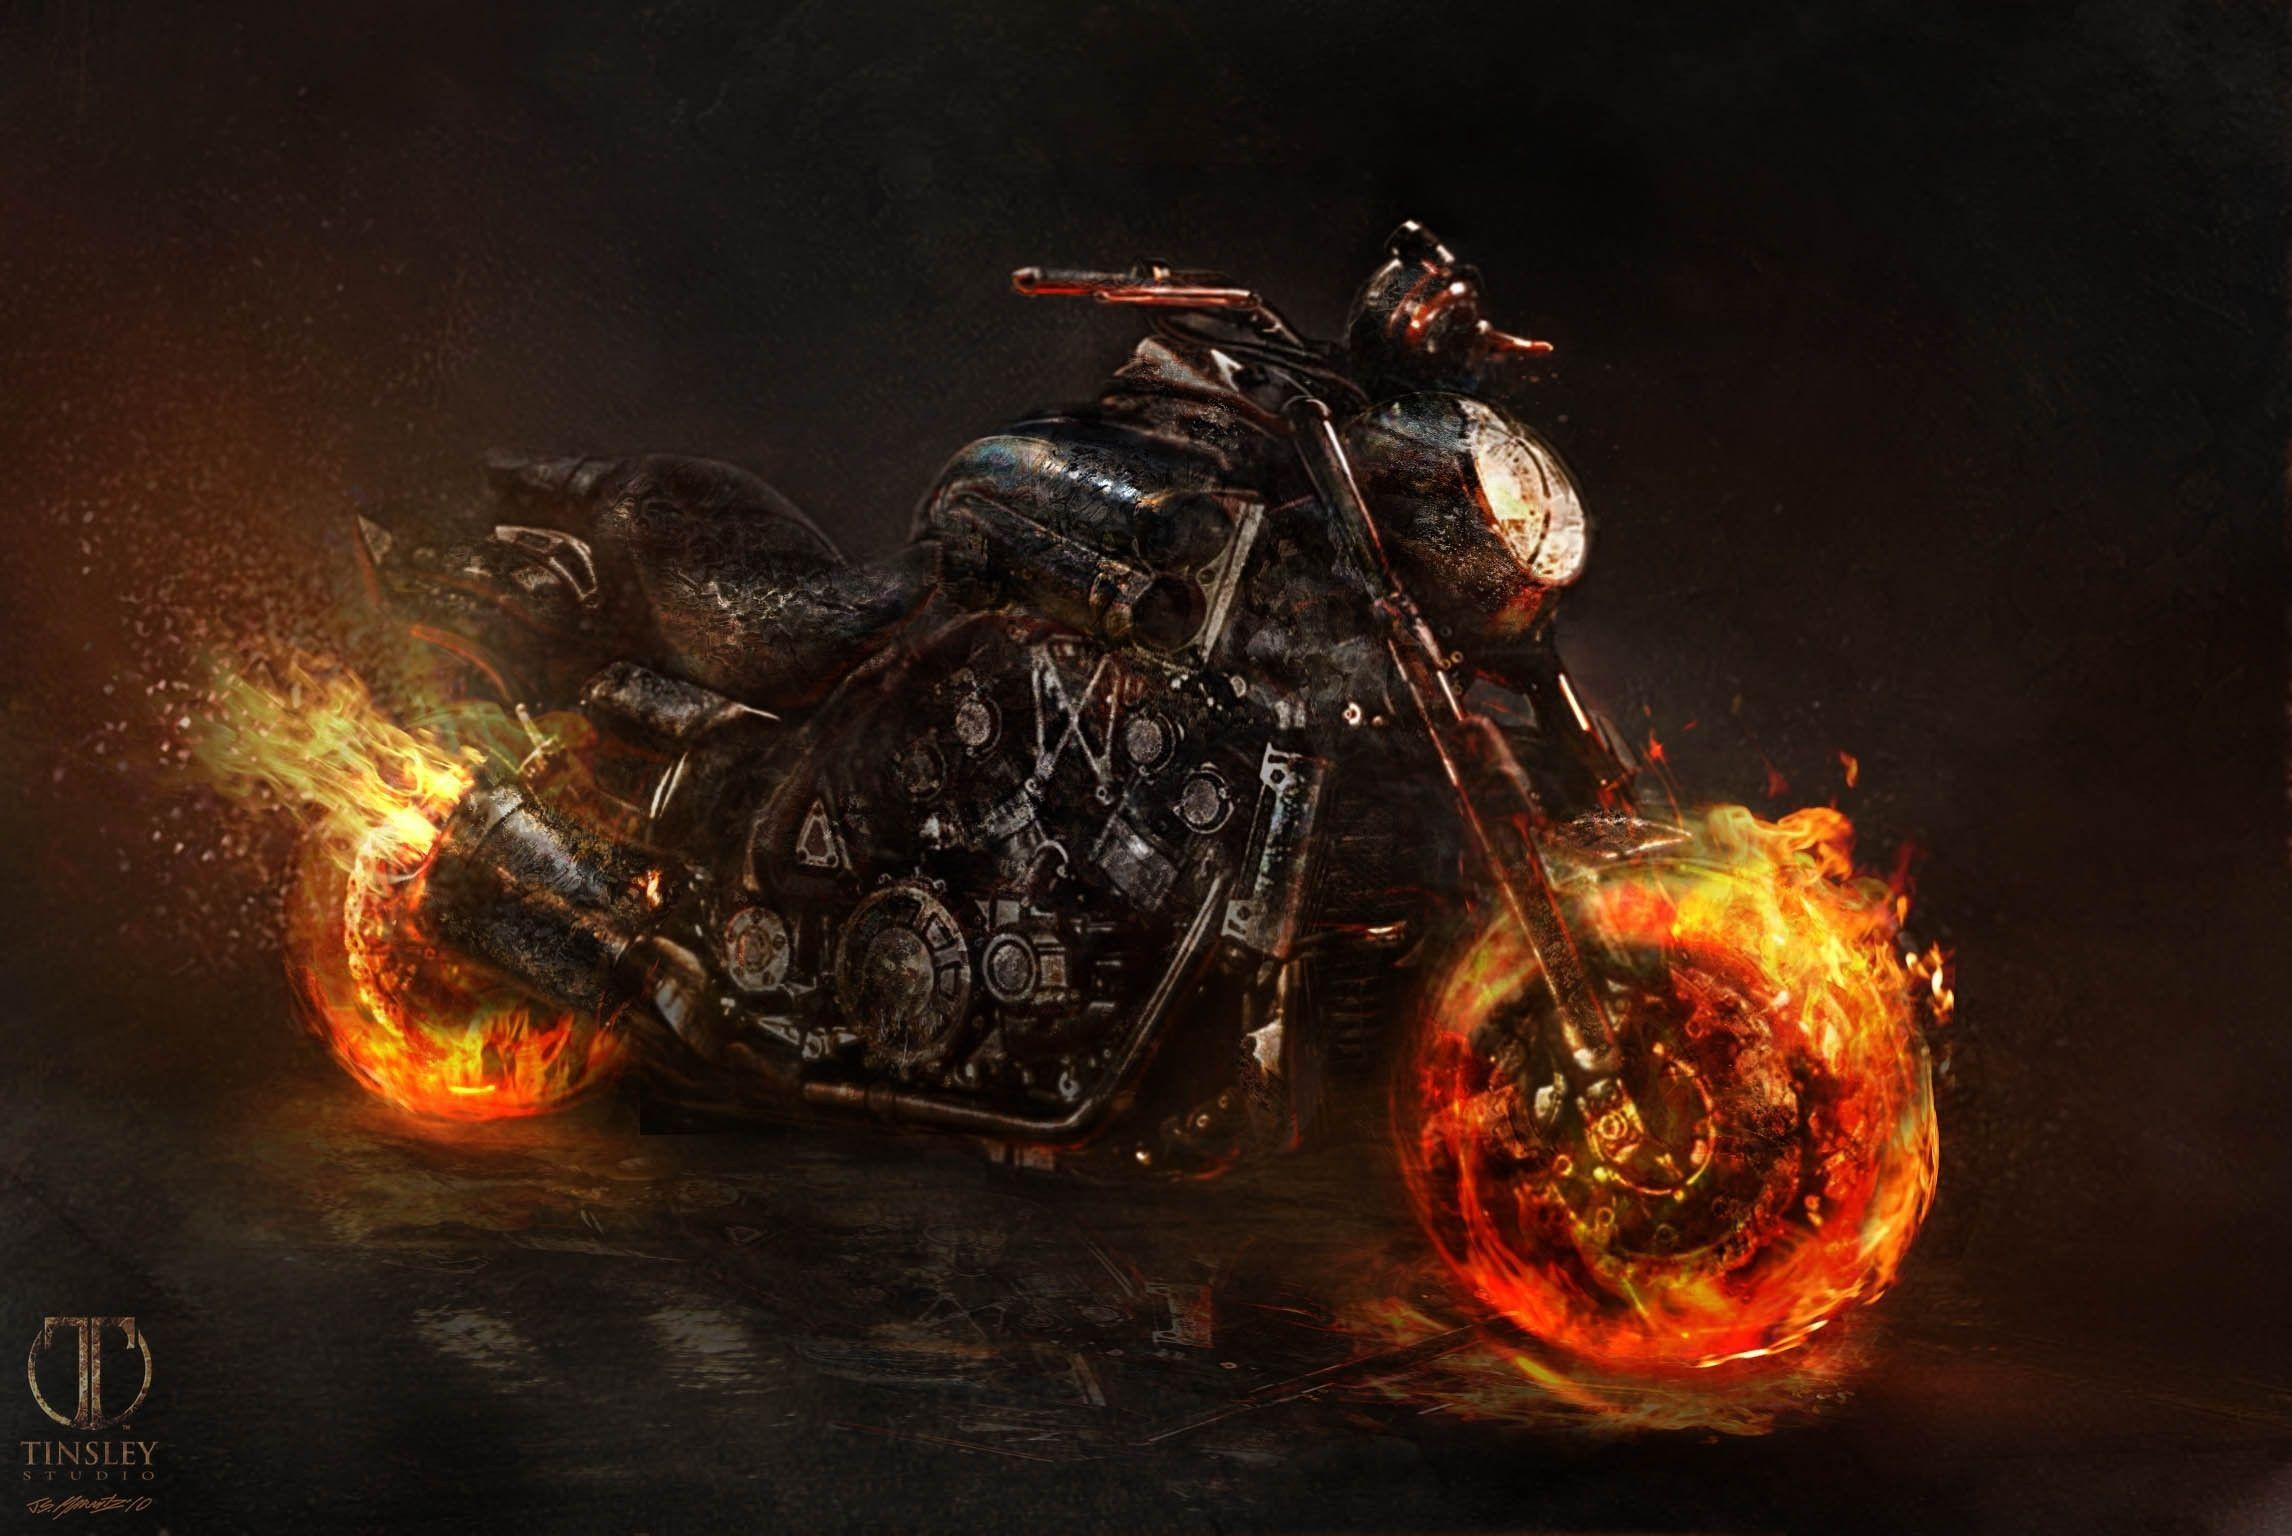 "1920x1080 Ghost Rider Wallpapers | Ghost Rider Backgrounds and Images (49 ..."">"